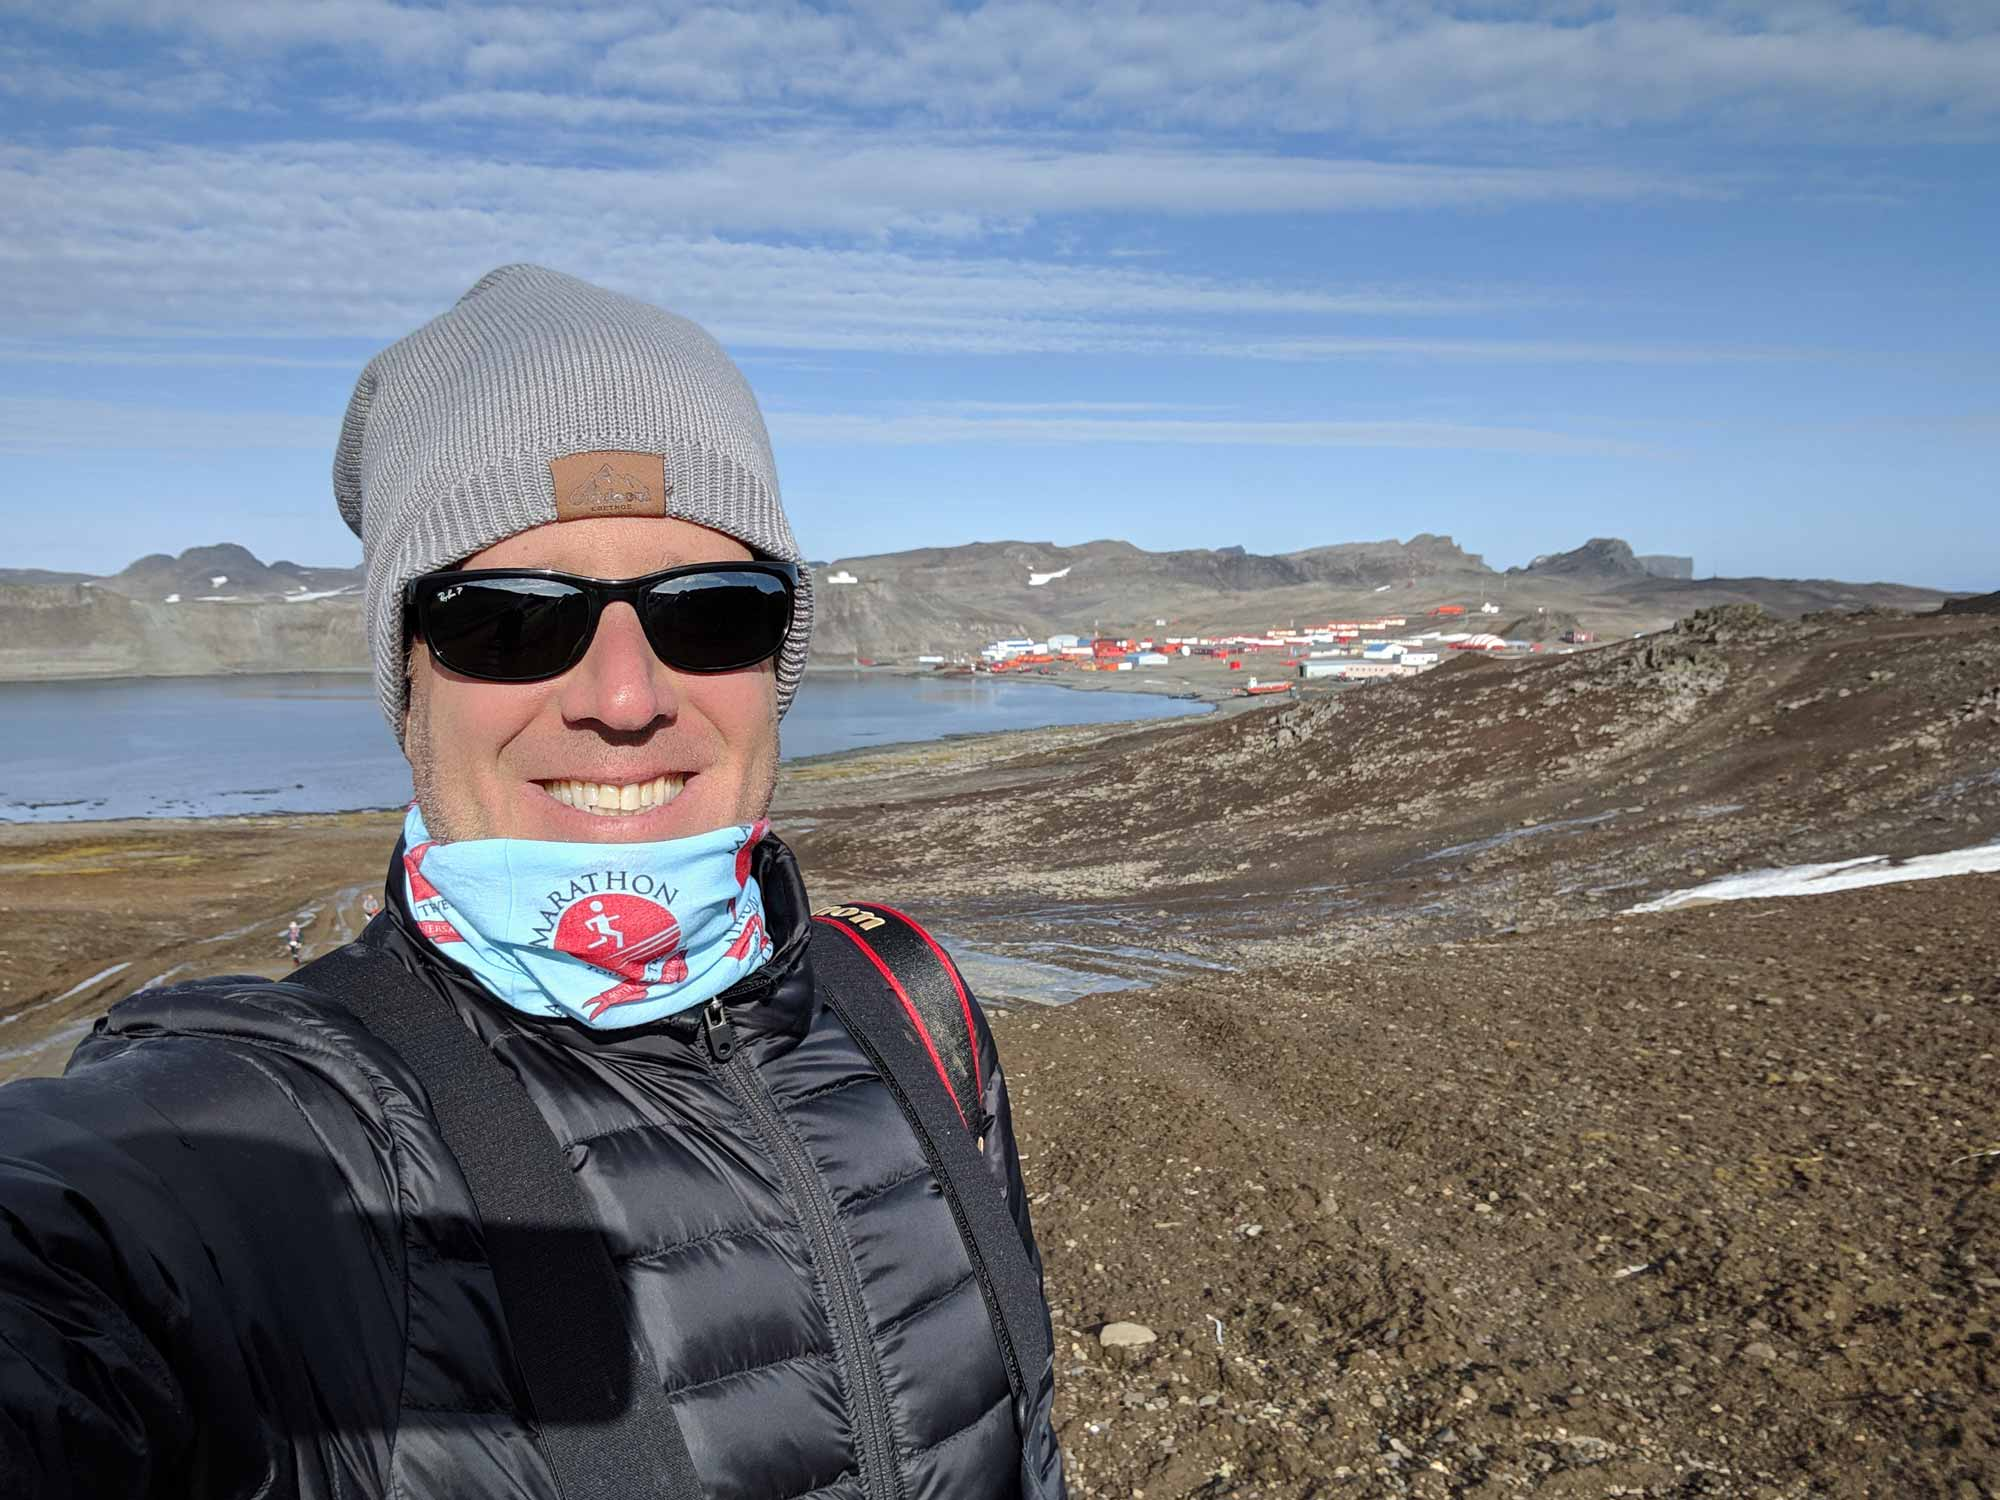 What to wear in antarctica in march when it's warm? Michael wearing just a small puff coat, a cap, and a neck gaiter. Very little snow in the background